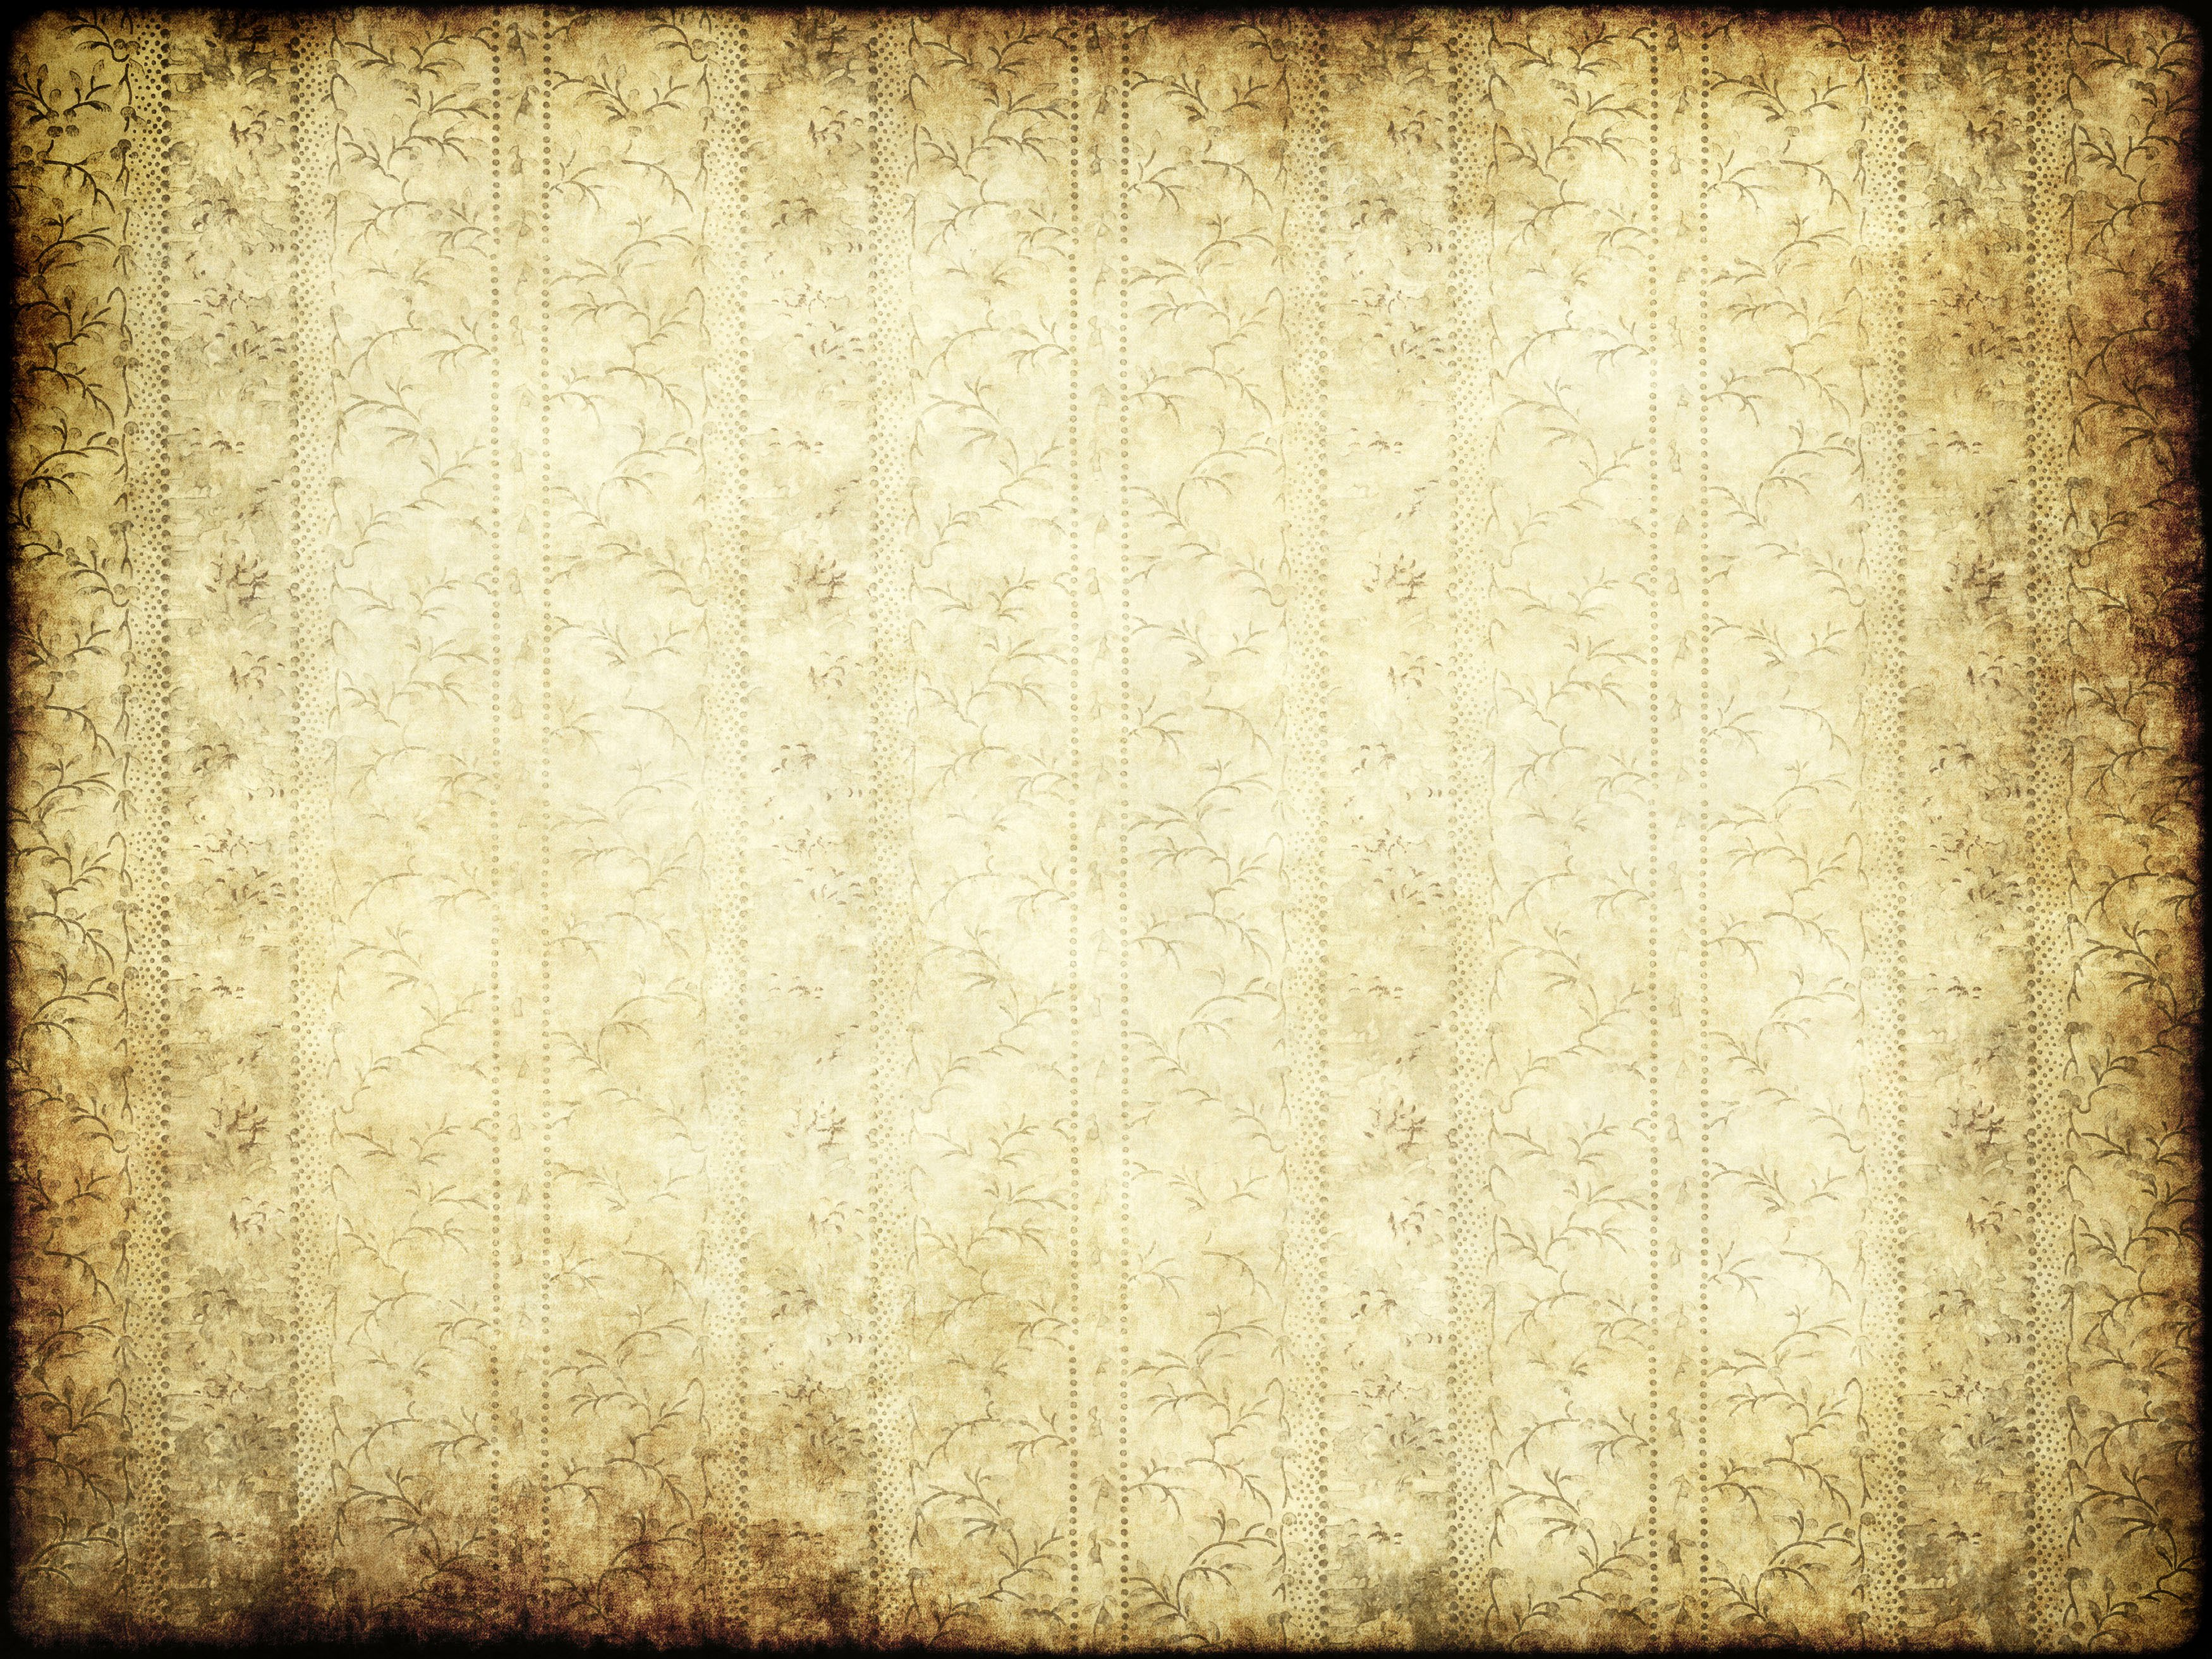 Old Paper Texture Free Beautiful Grunge Background Of Old Paper Texture Background